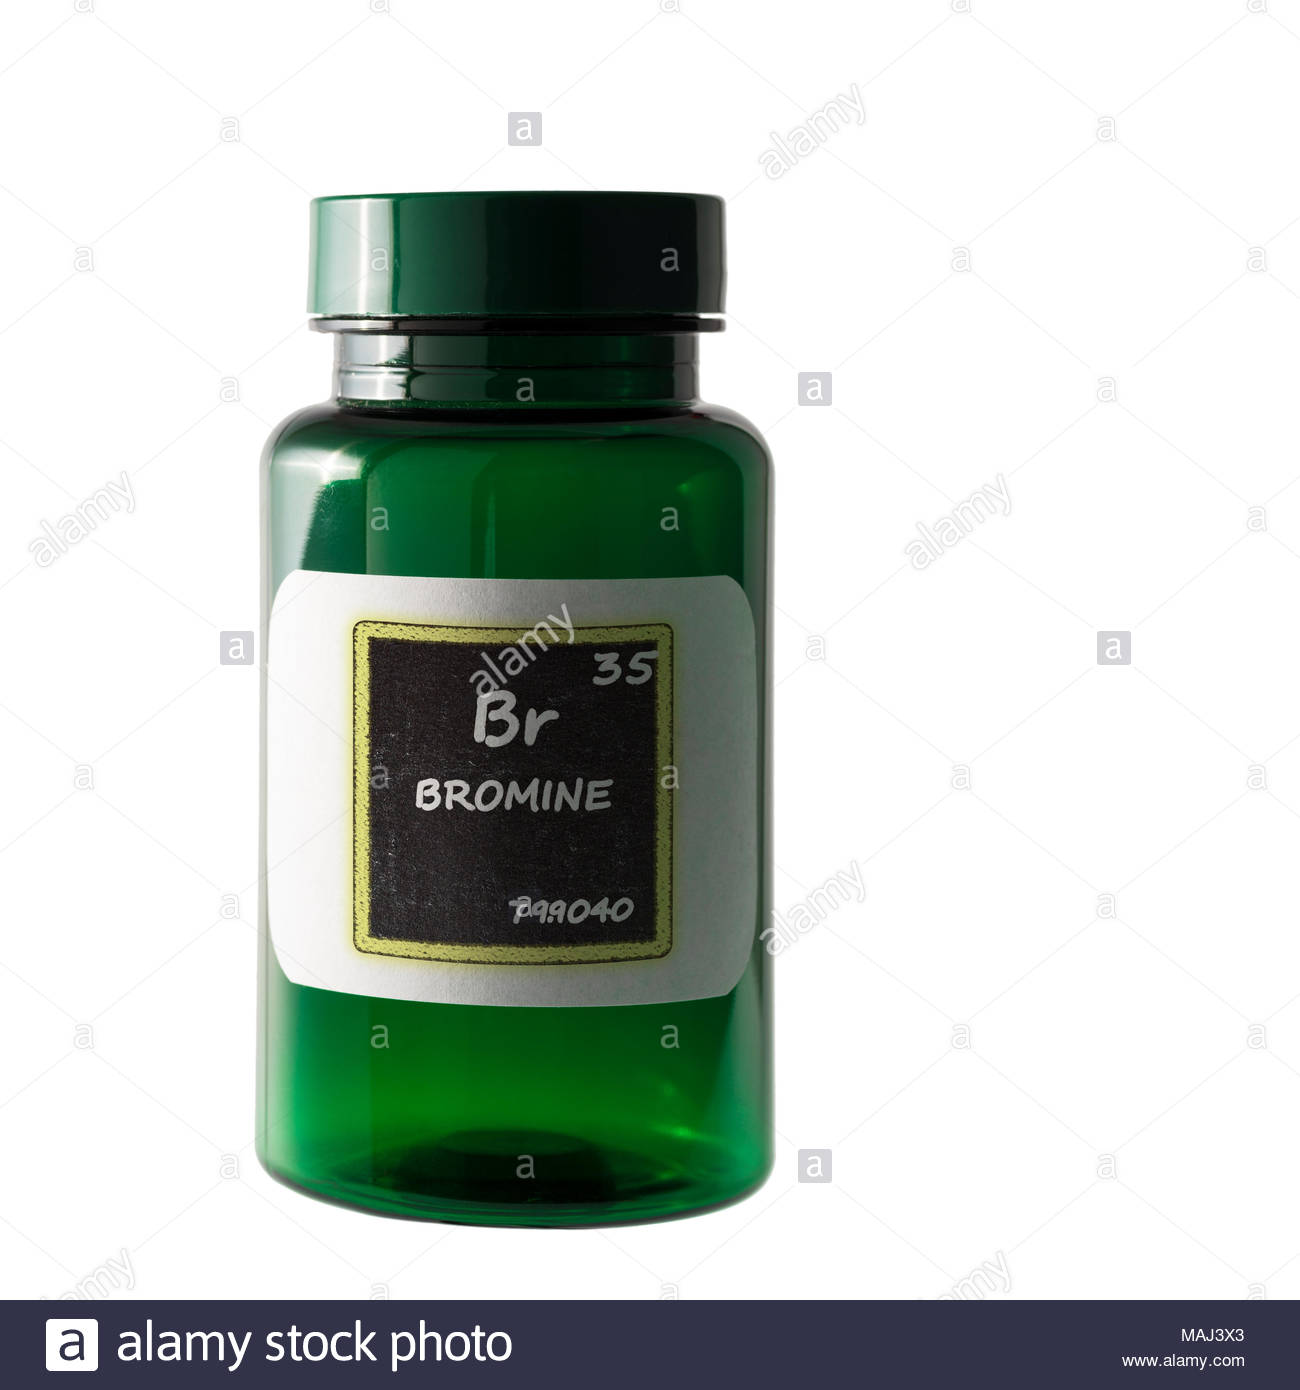 Bromine Periodic Table Details Shown On Bottle Label Stock Photo